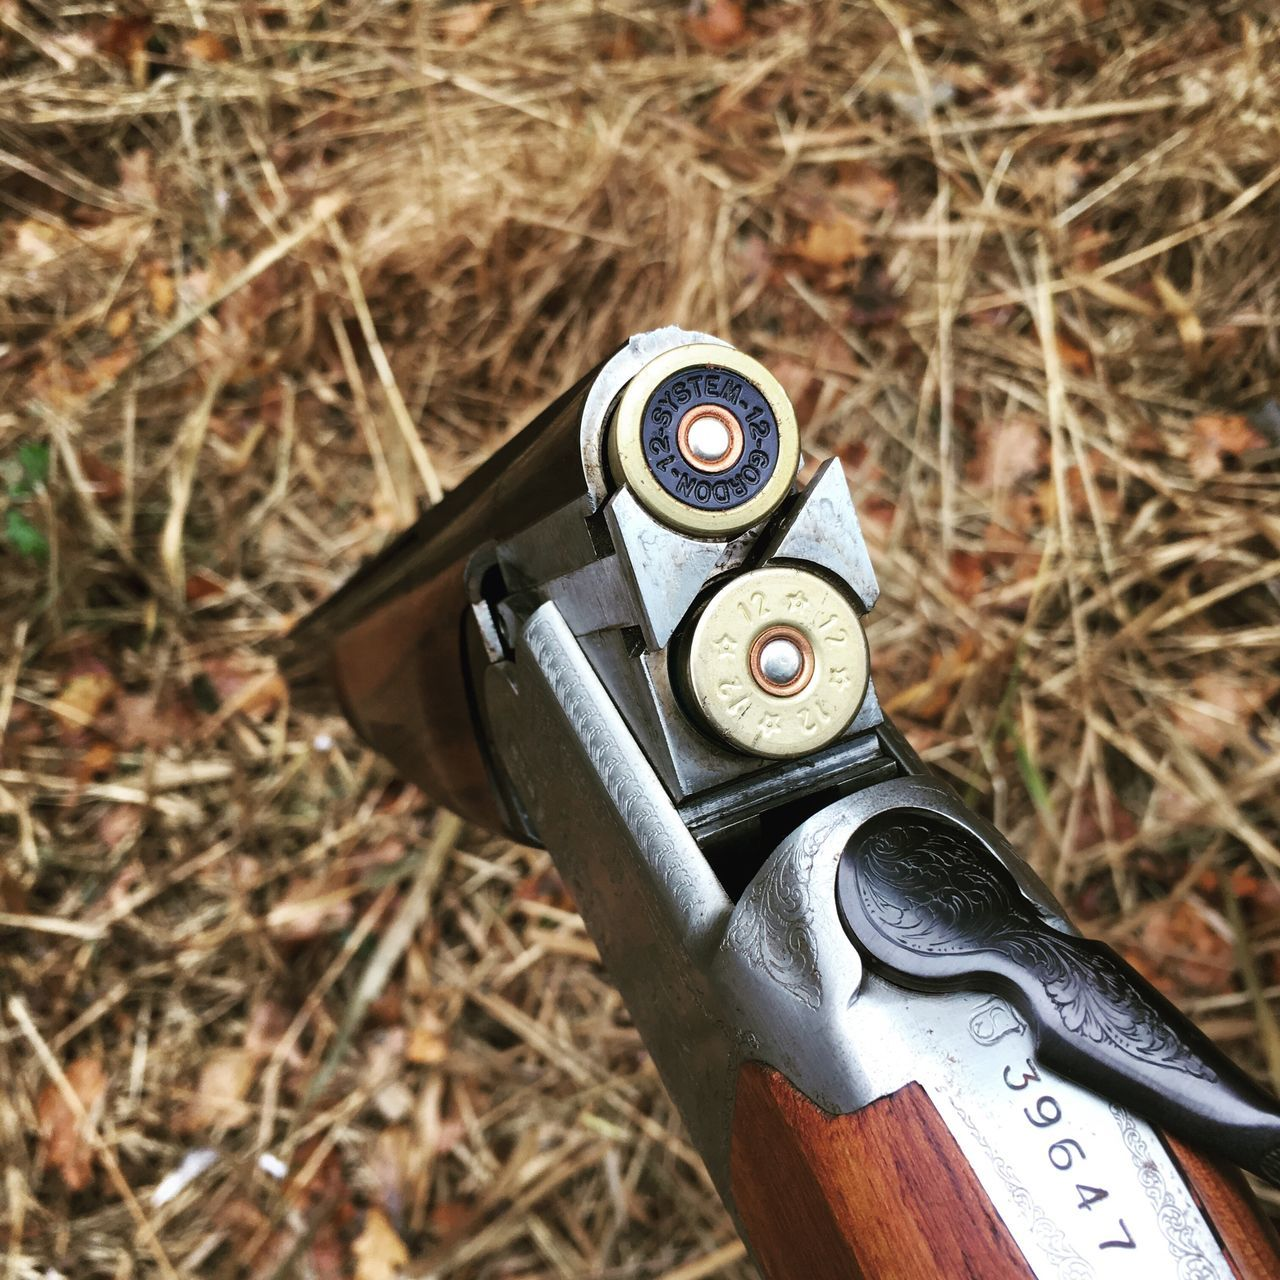 Close-up Weapon Outdoors Shooting Pheasant Shotgun Rural Nature Autumn